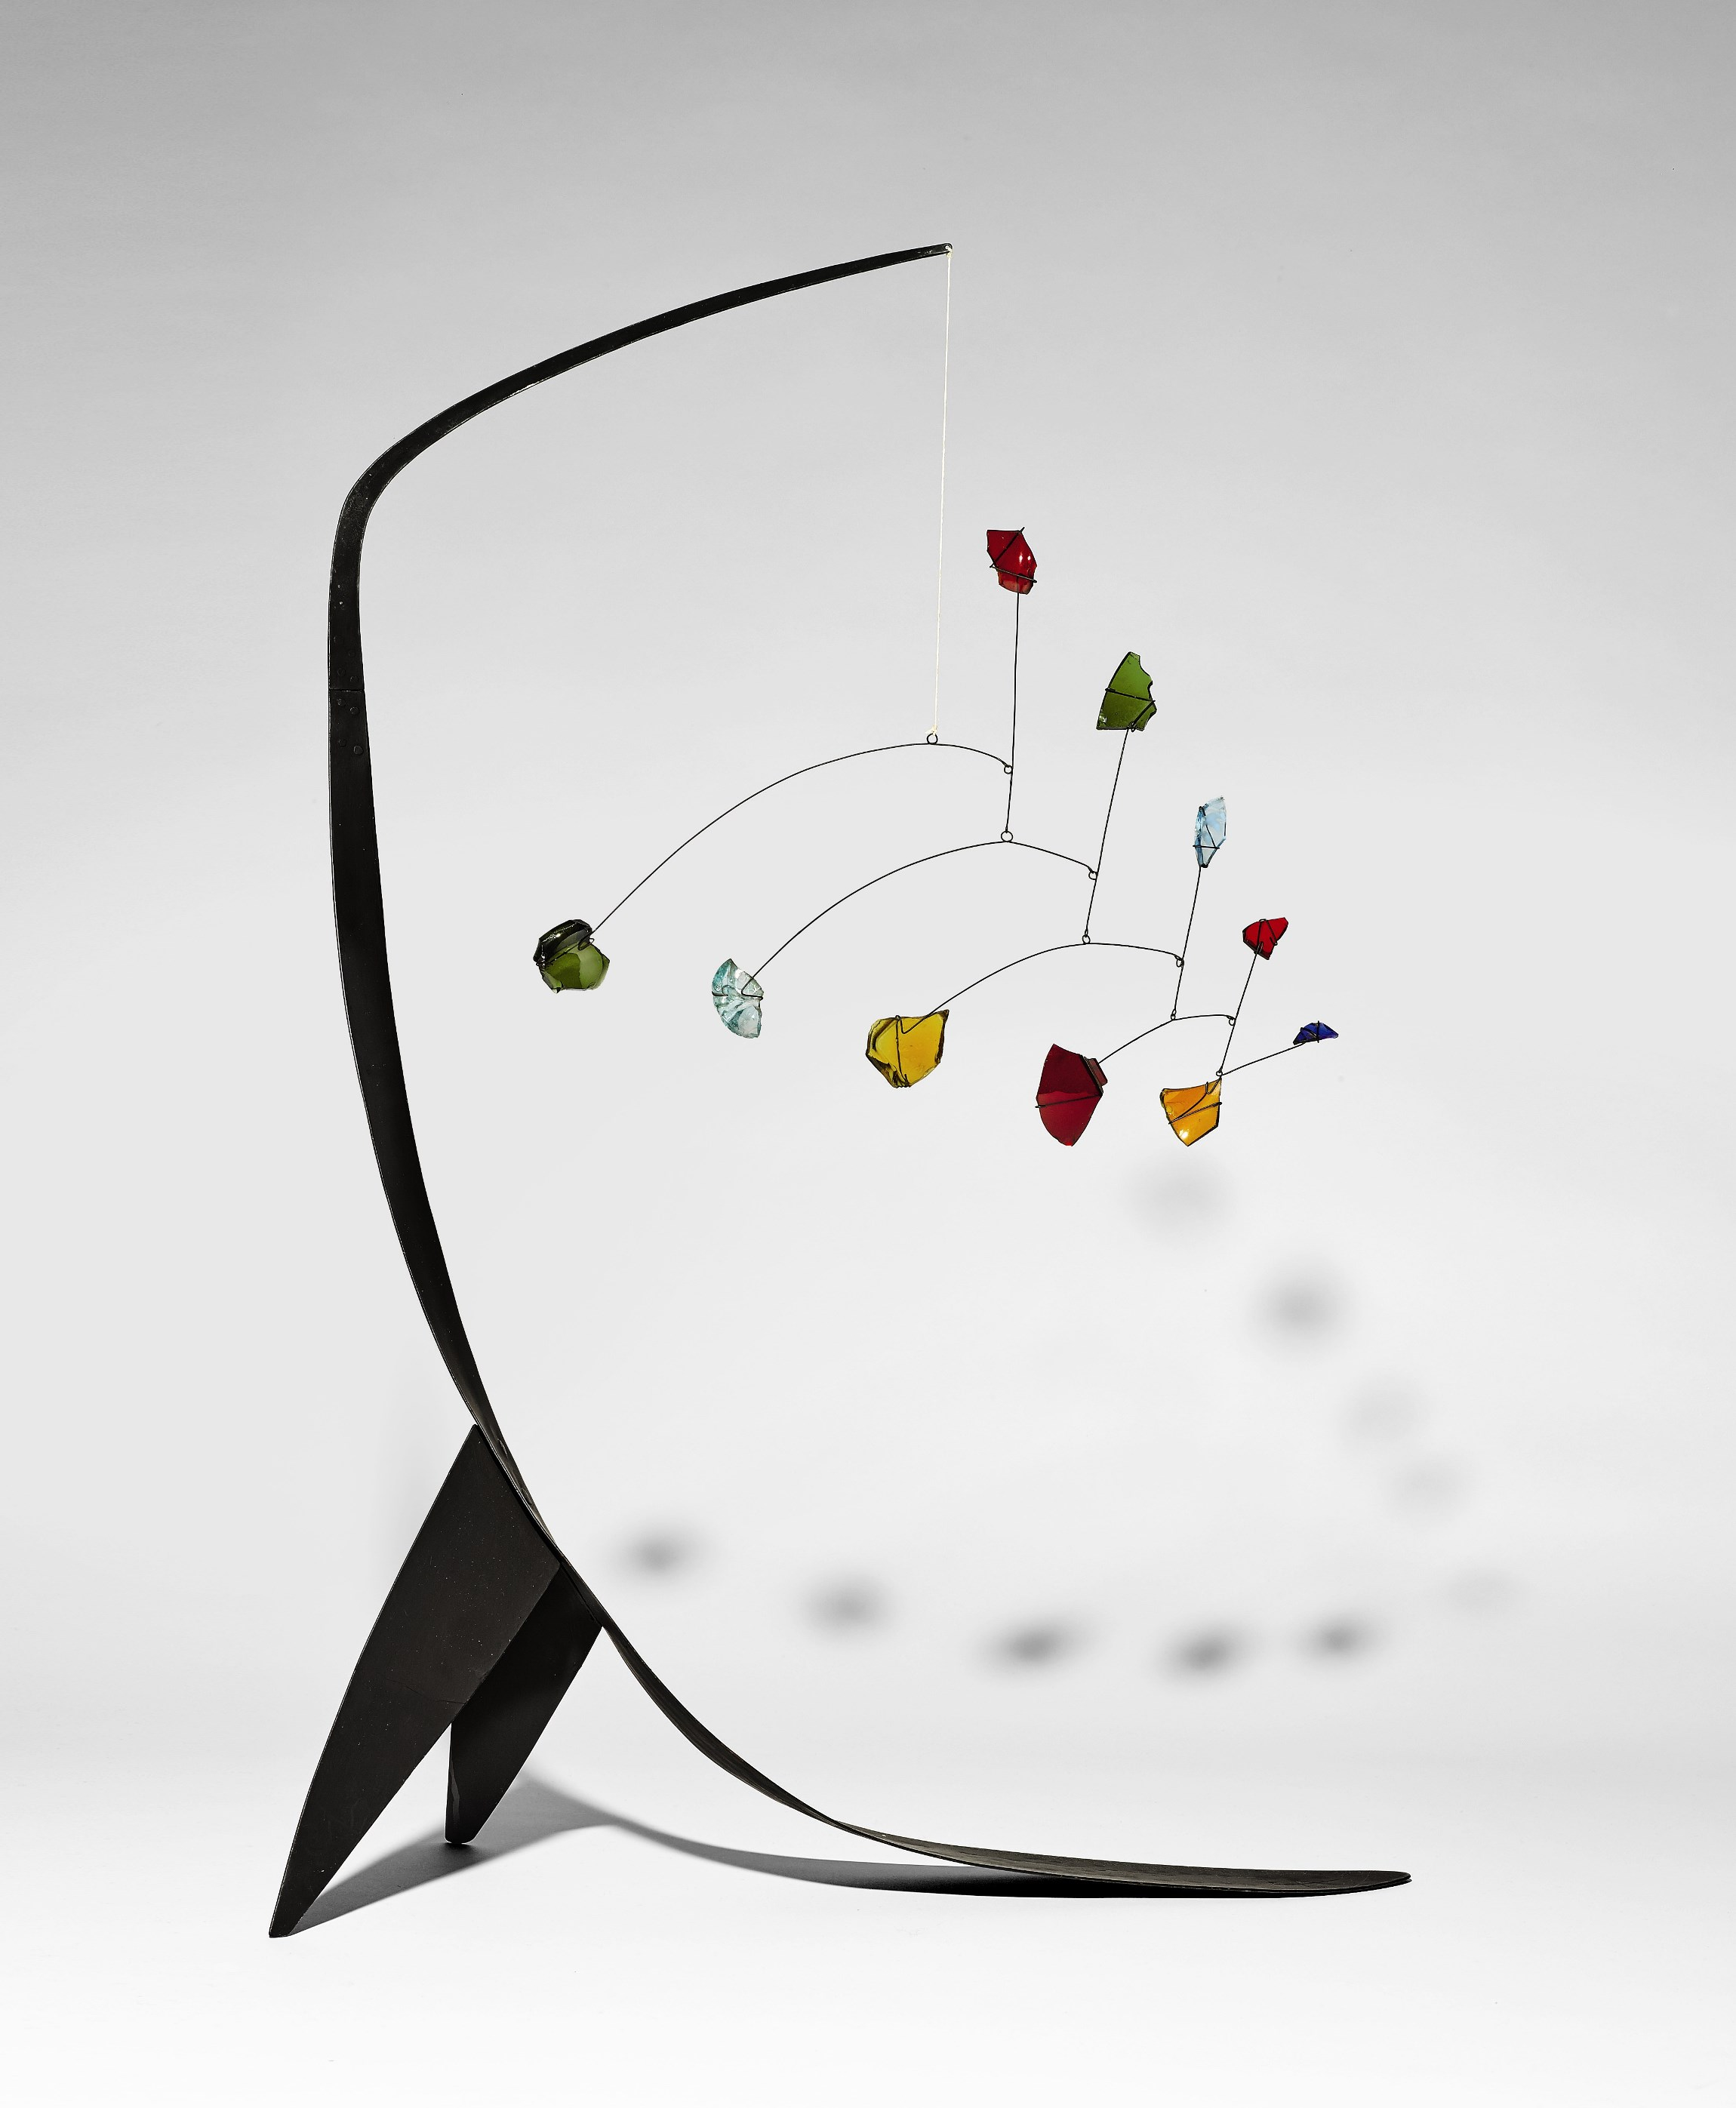 An untitled Alexander Calder.